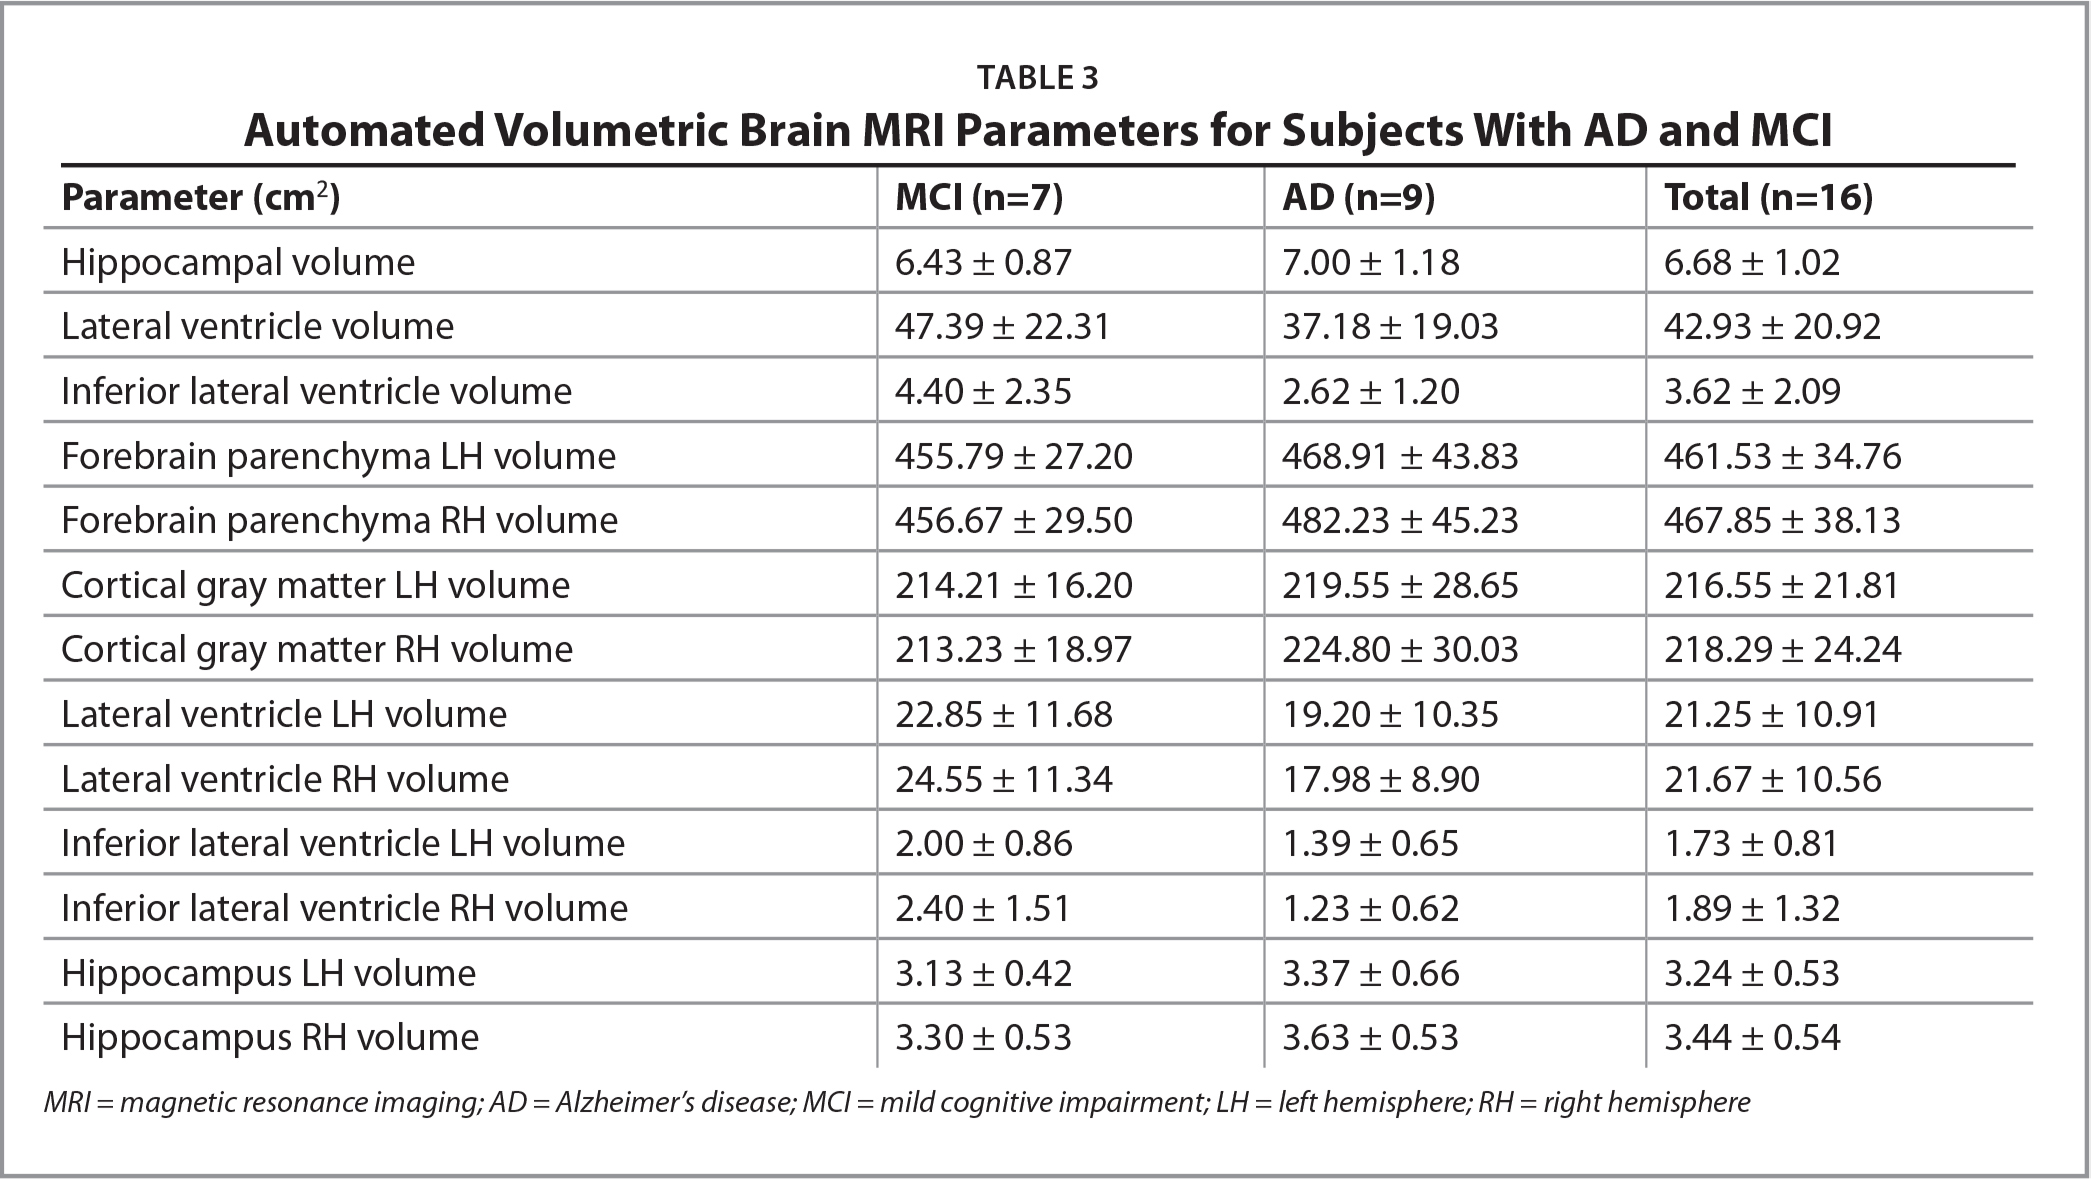 Automated Volumetric Brain MRI Parameters for Subjects With AD and MCI